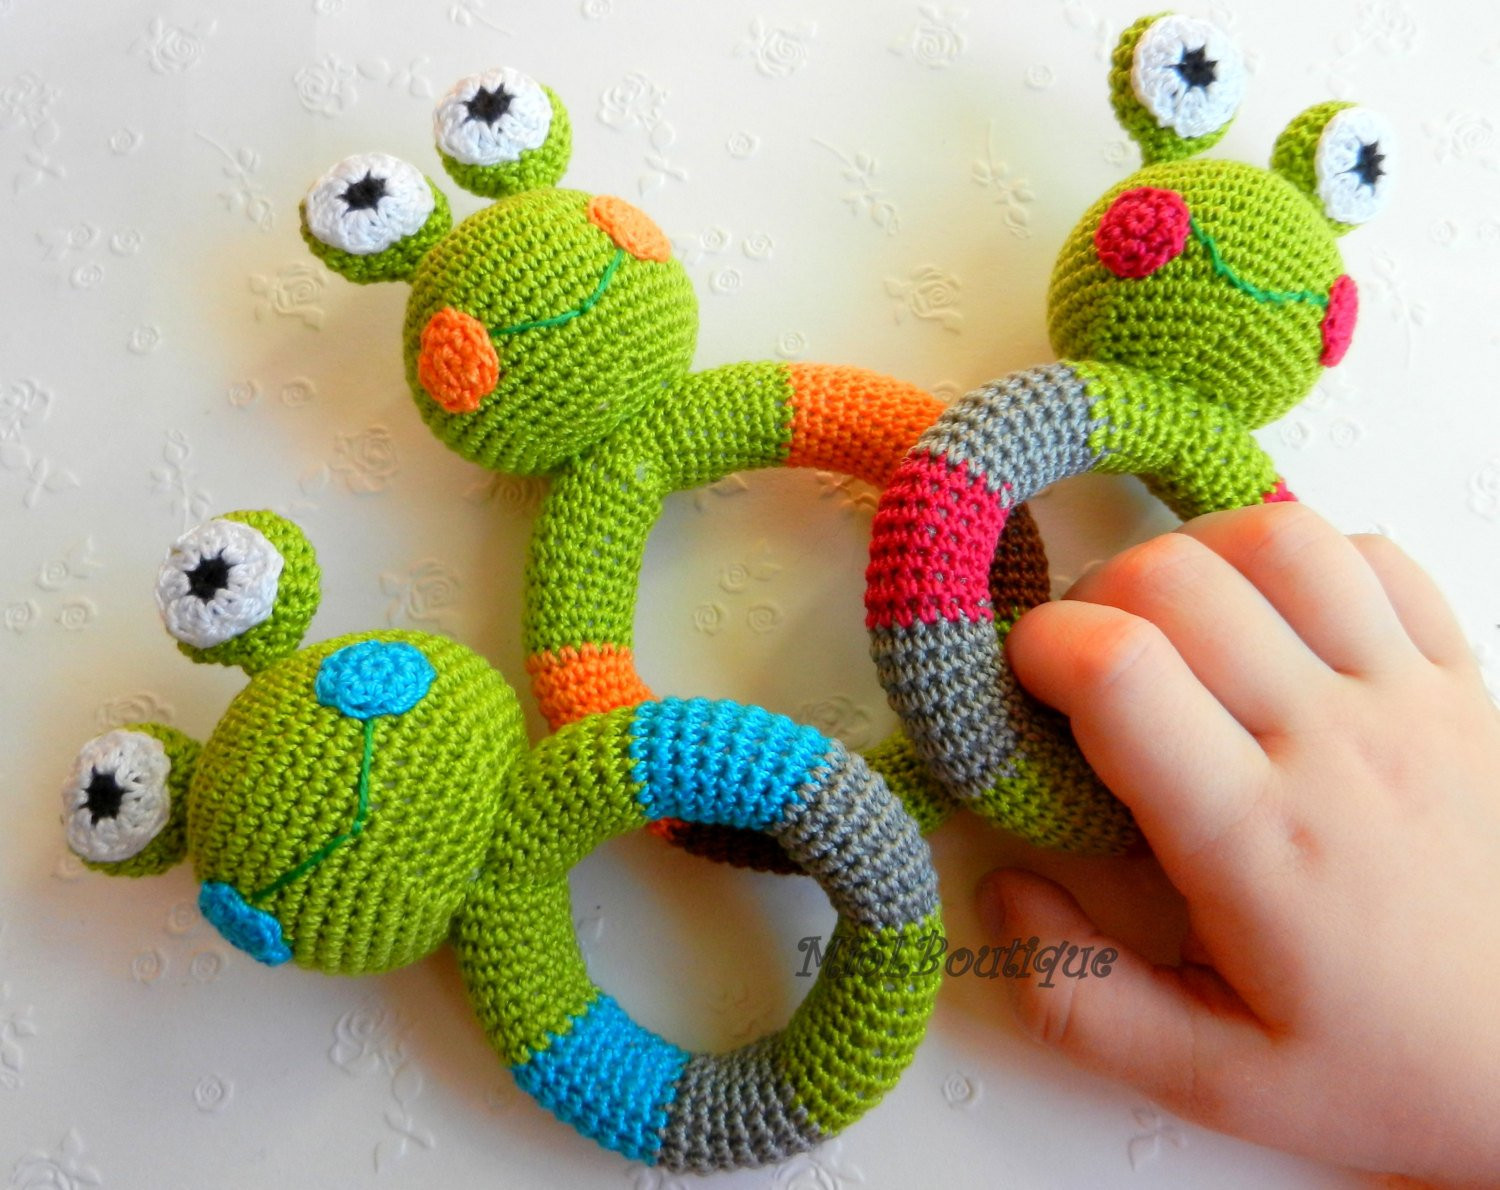 Luxury Crochet Baby toy Grasping and Teething toys Frog Stuffed toys Crochet Baby toy Patterns Of Lovely 44 Images Crochet Baby toy Patterns